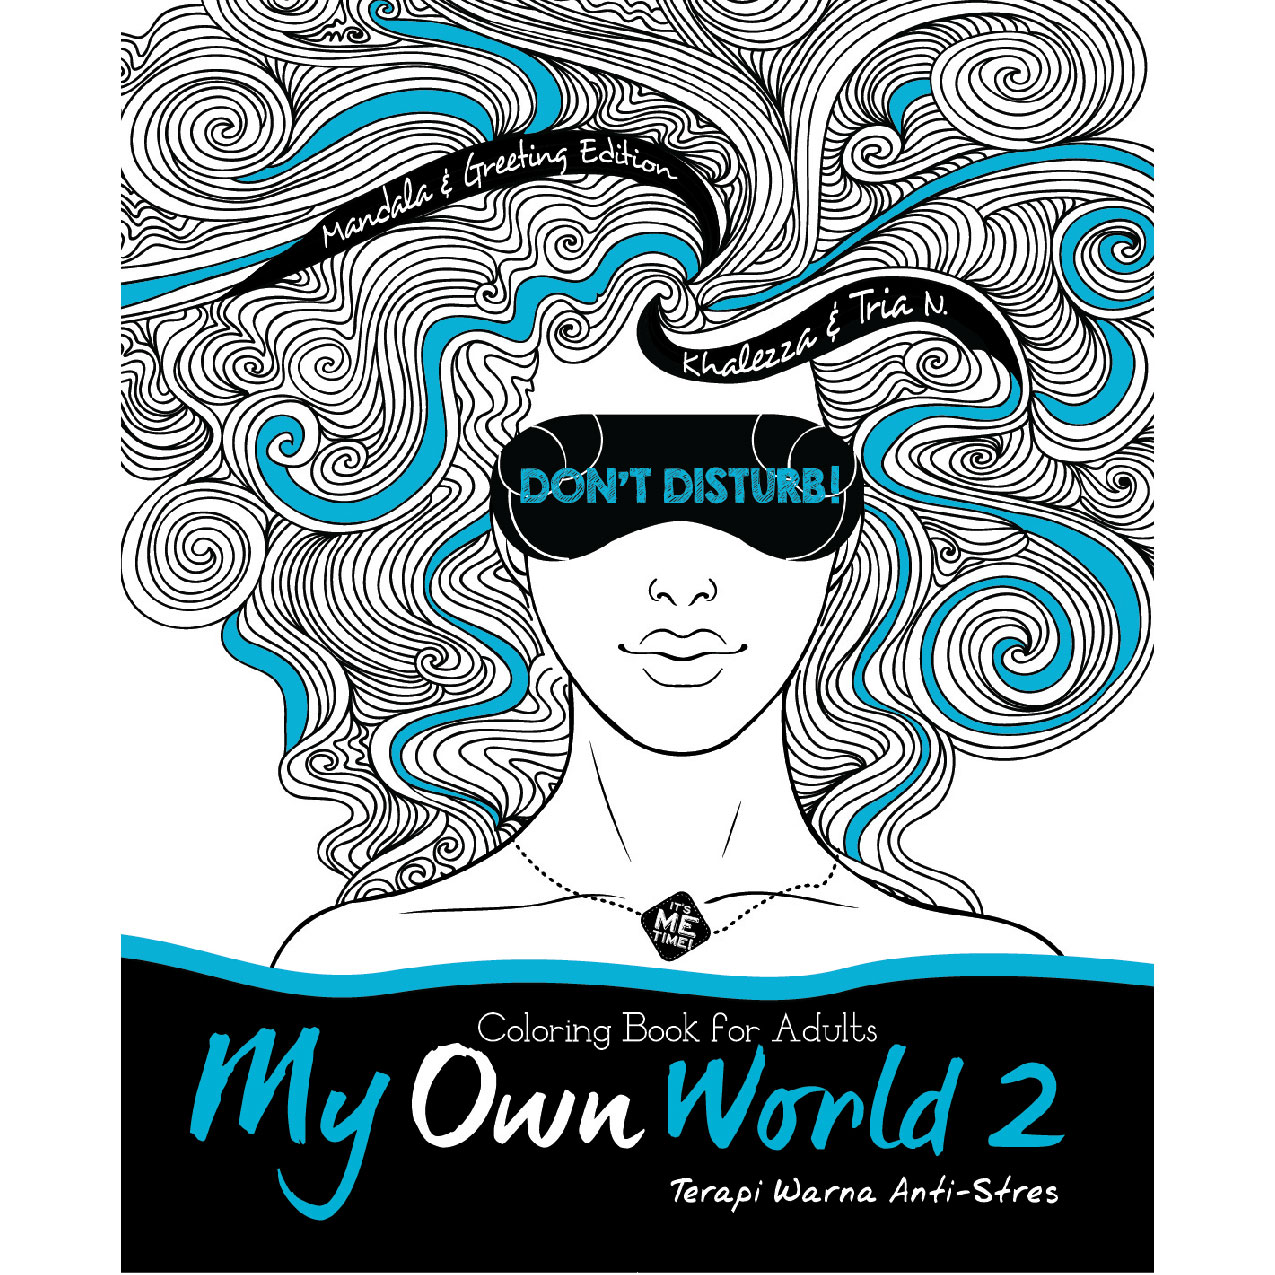 Coloring Book For Adults Harga : My Own World 2: Coloring Book For Adults (terapi Warna Anti stres) Edisi Mandala & Greeting ...